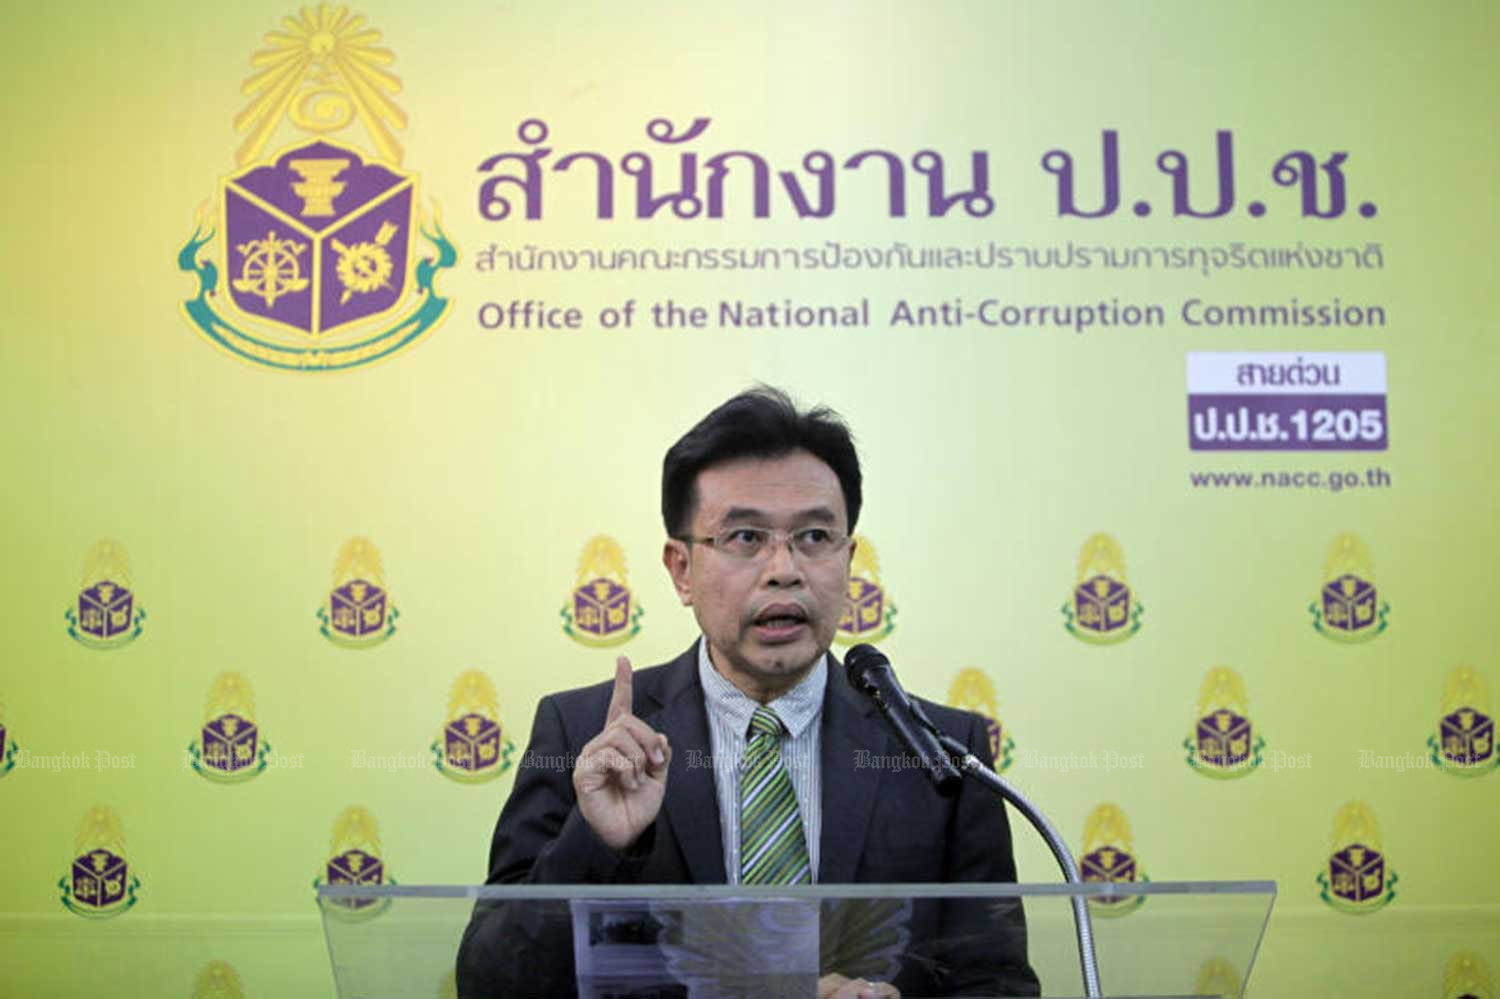 Voravit Sukboon, secretary-general of the National Anti-Corruption Commission (NACC), announces the findings of a probe into an alleged 20-million-baht bribe involving four senior local officials in Nakhon Si Thammarat in a power plant project. (File photo)